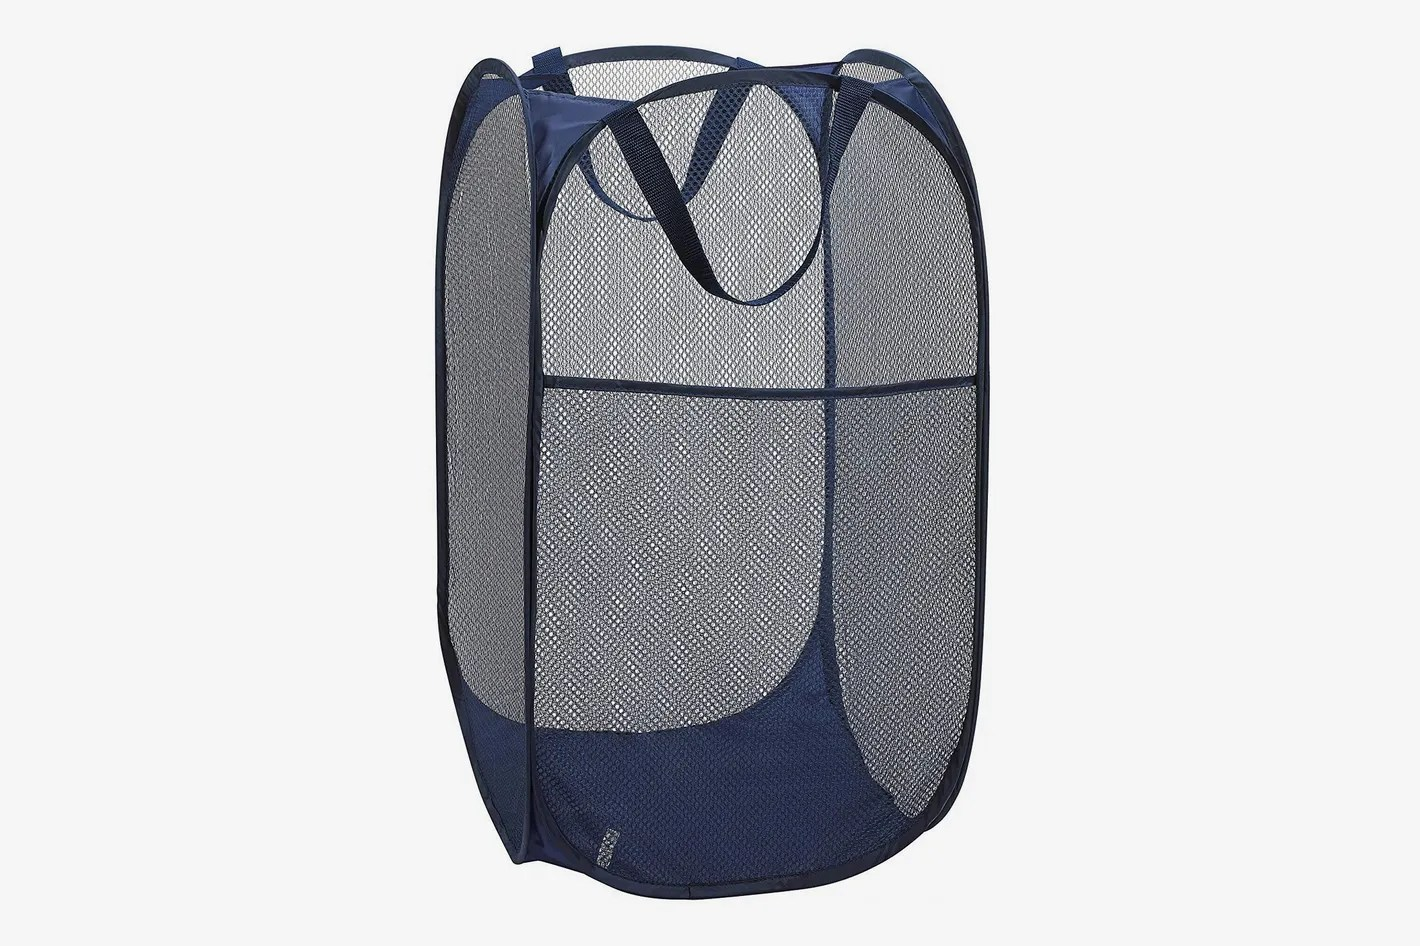 Cute Laundry Hamper 18 Best Laundry Baskets And Hampers 2019